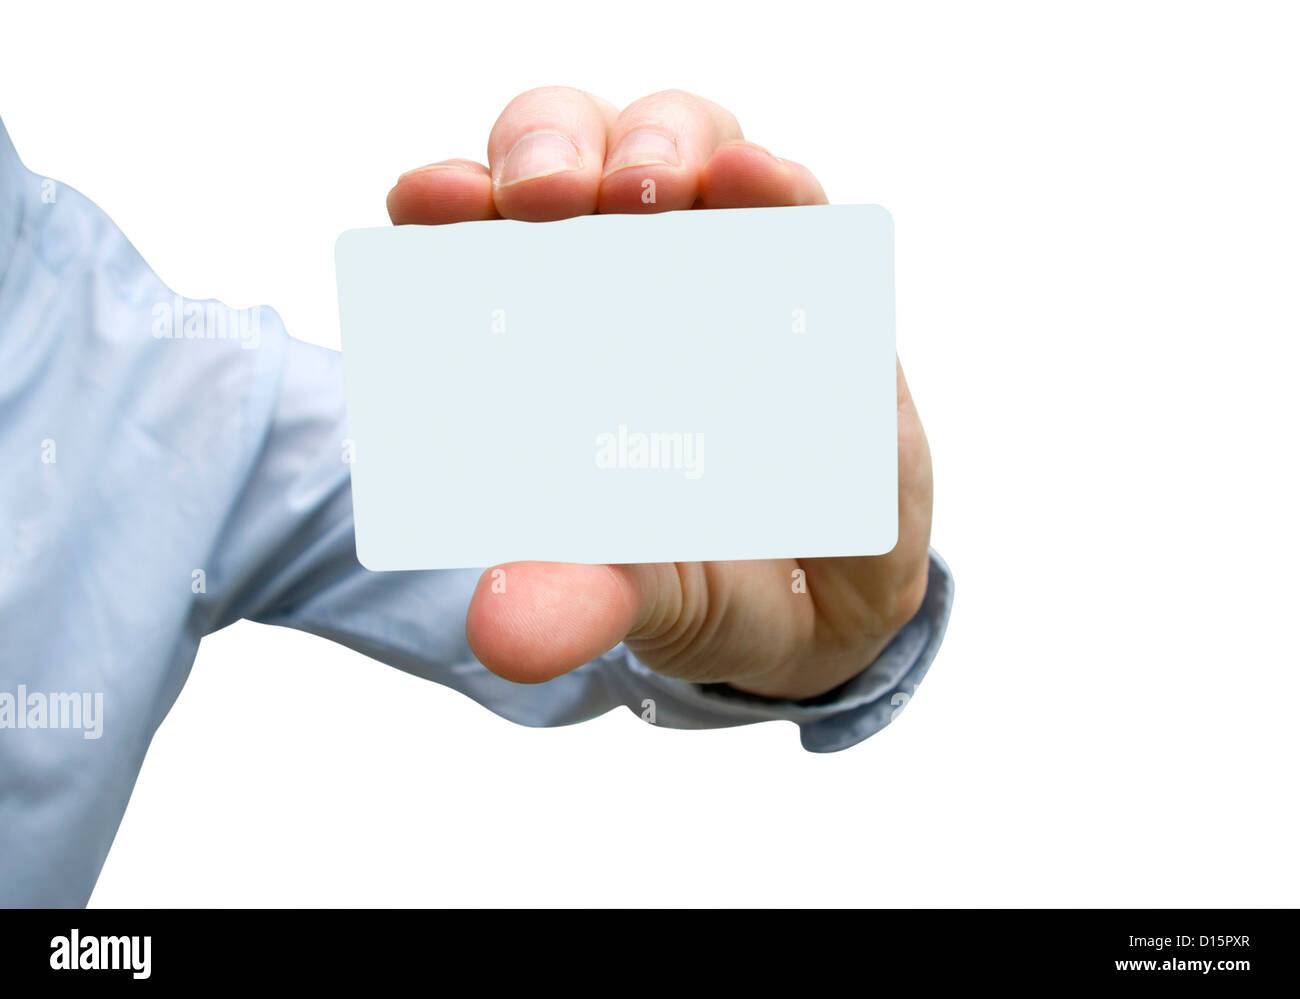 Man hand holding a blank business card Stock Photo: 52373519 - Alamy